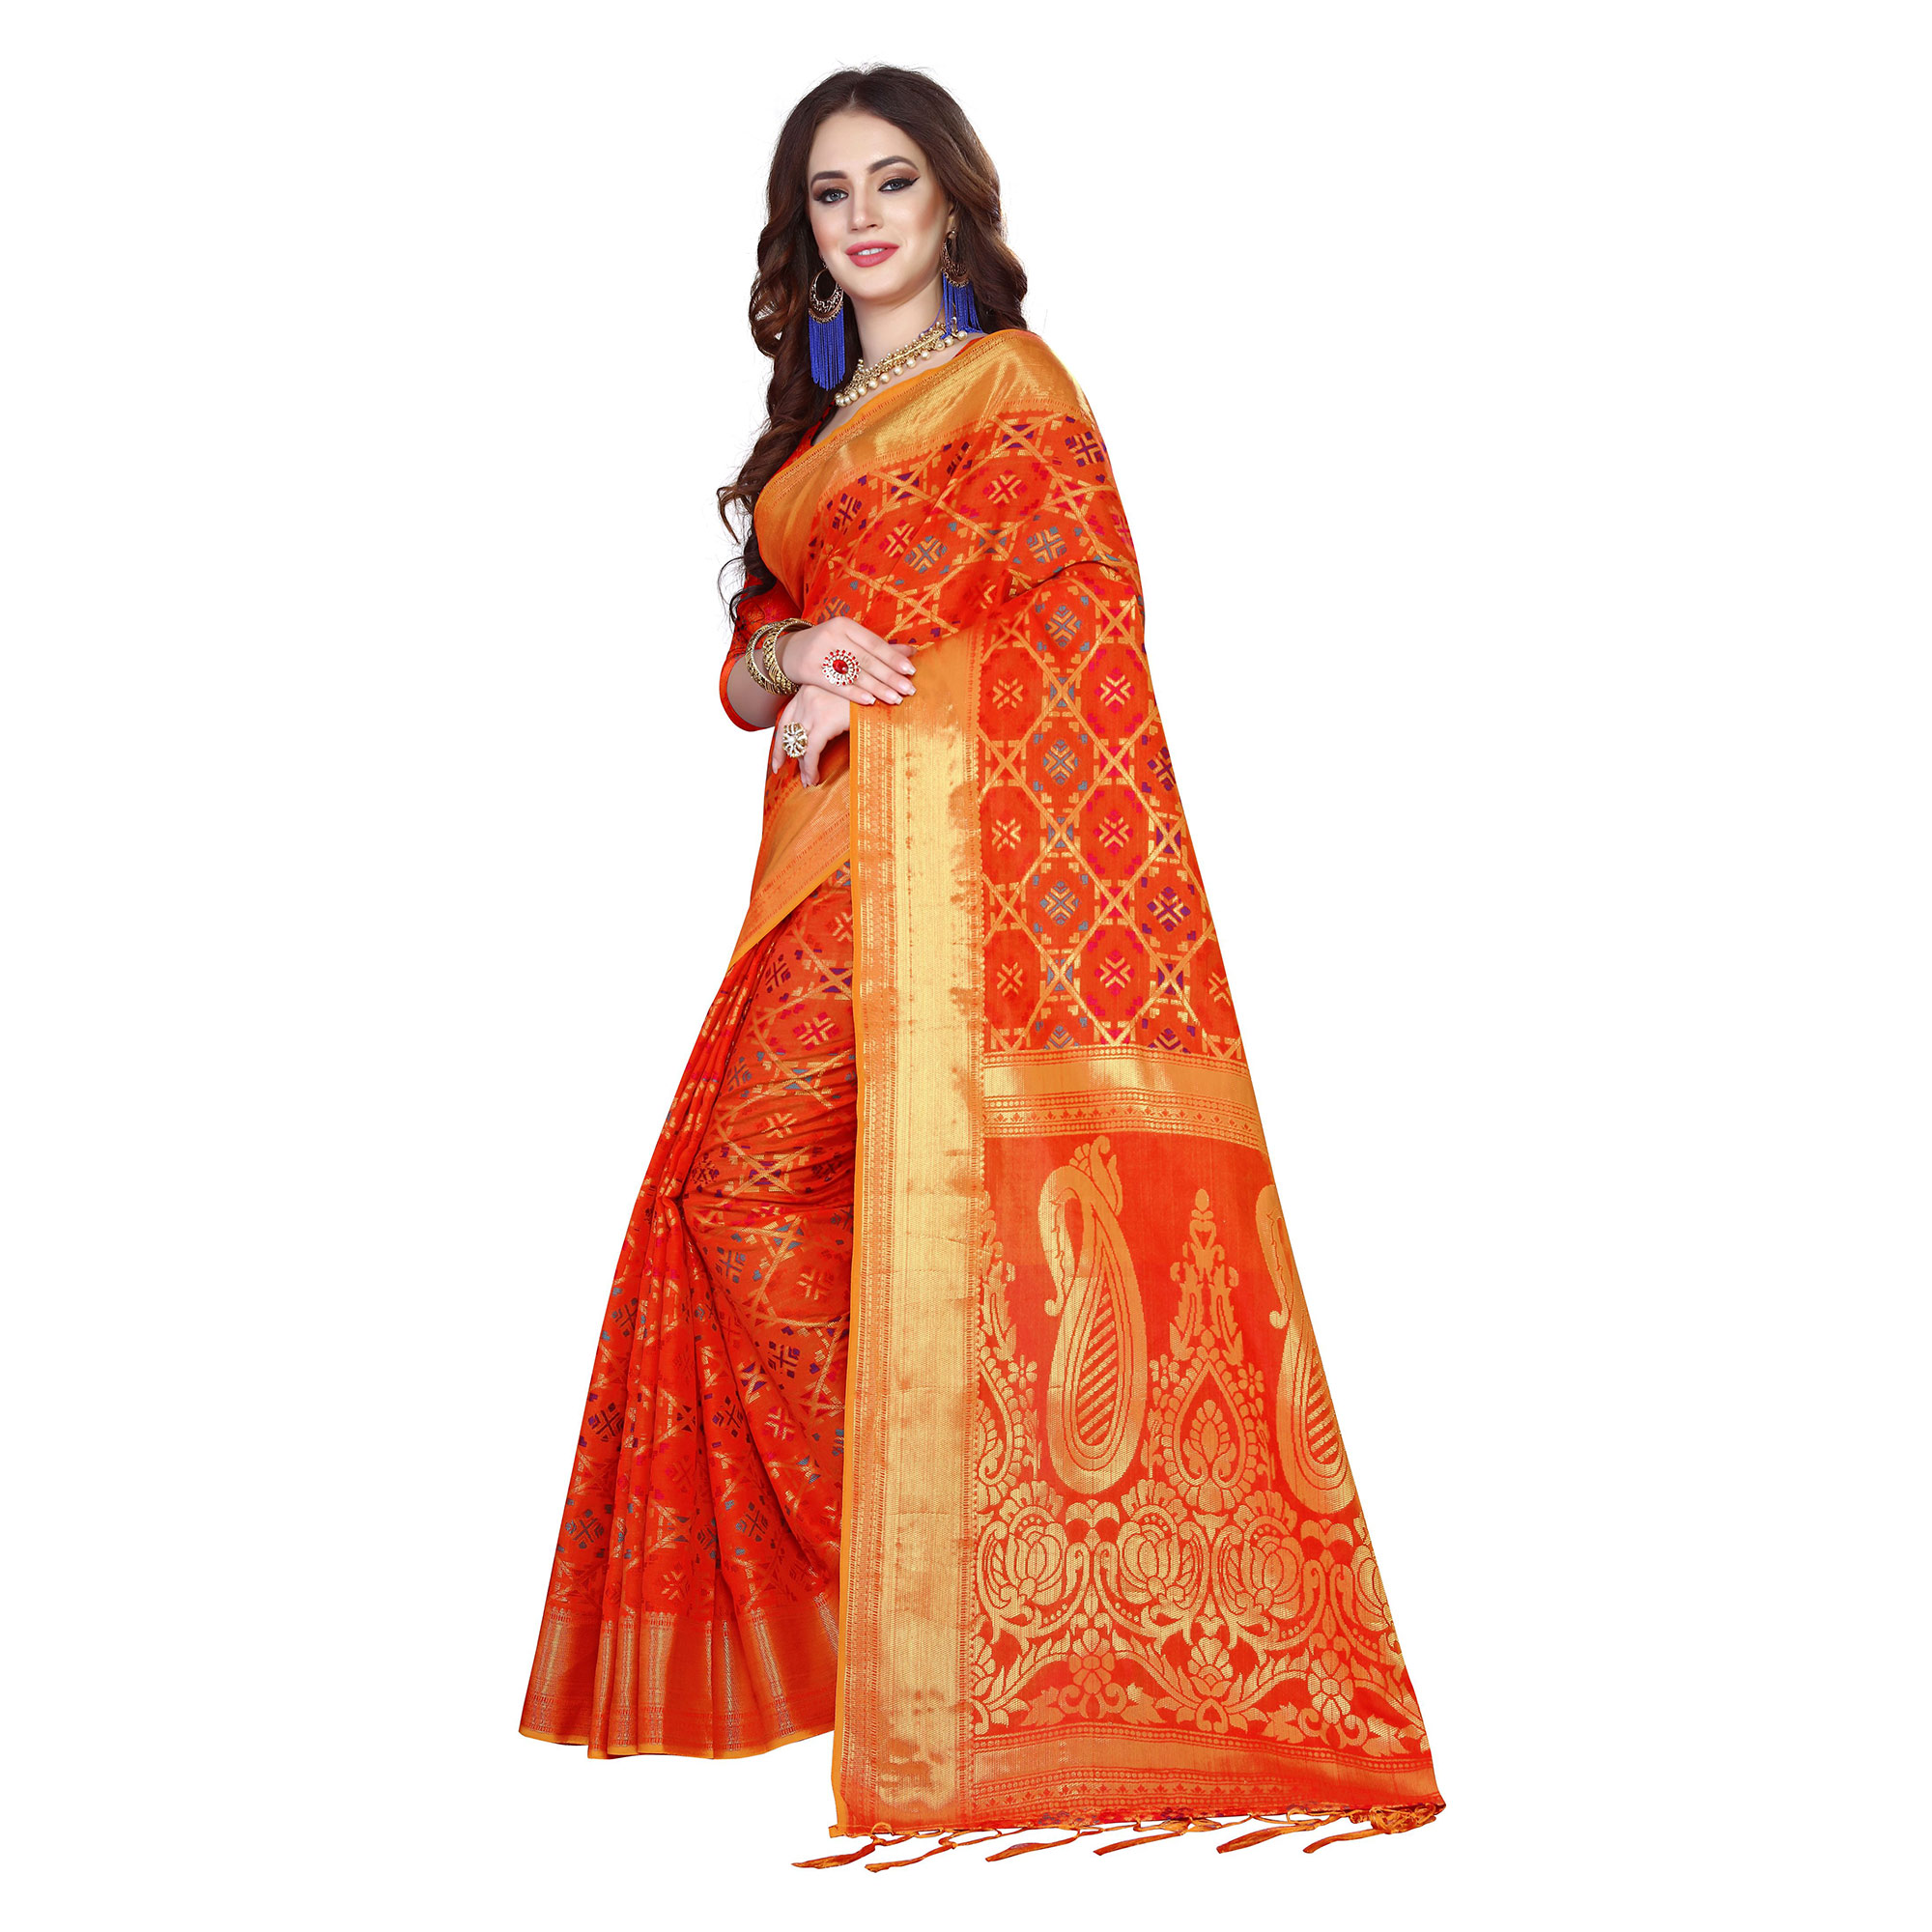 Radiant Orange Colored Festive Wear Woven Silk Saree